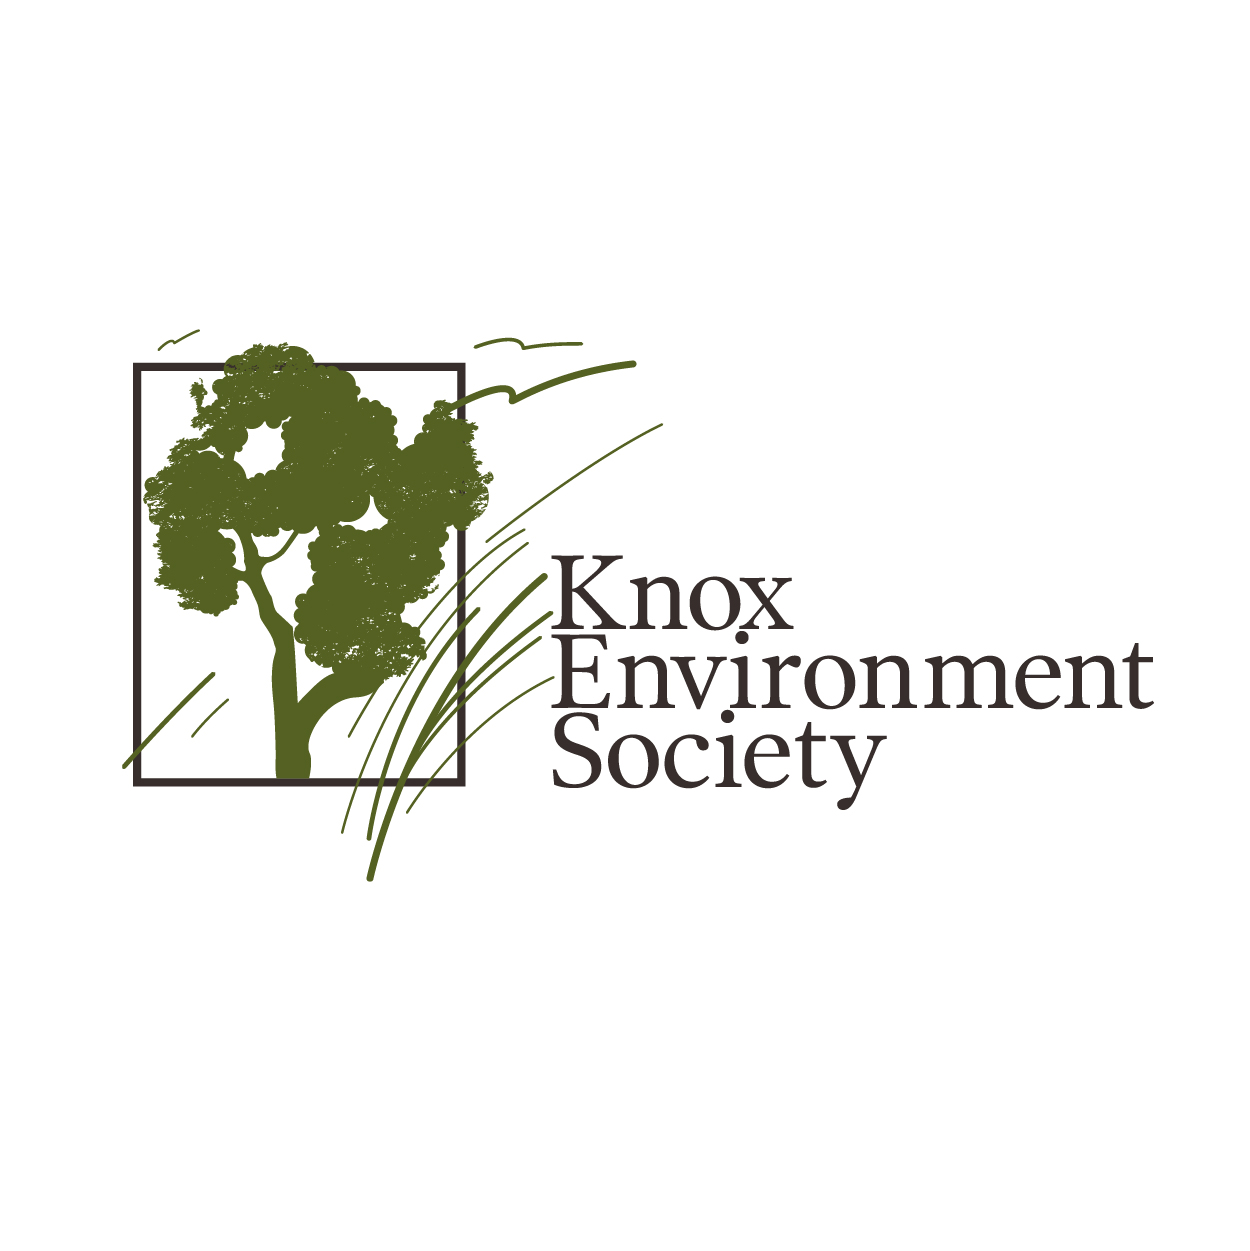 Knox Environment Society logo